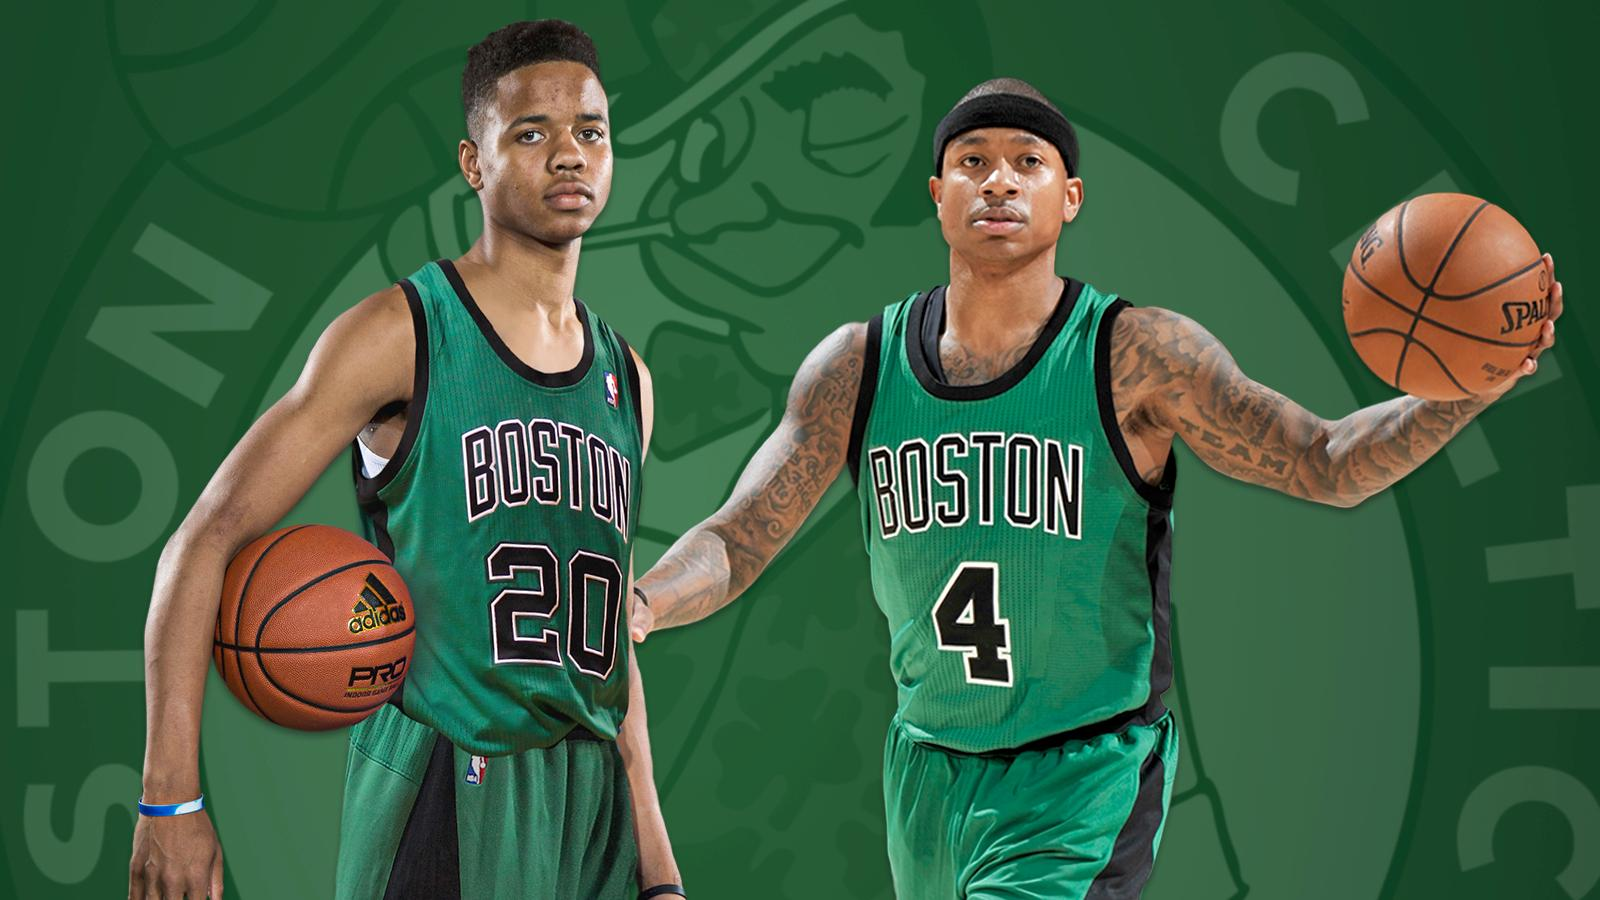 Isaiah Thomas believes he and Markelle Fultz could thrive together. https://t.co/NTfCn73w4s https://t.co/PuYyw8sBoN